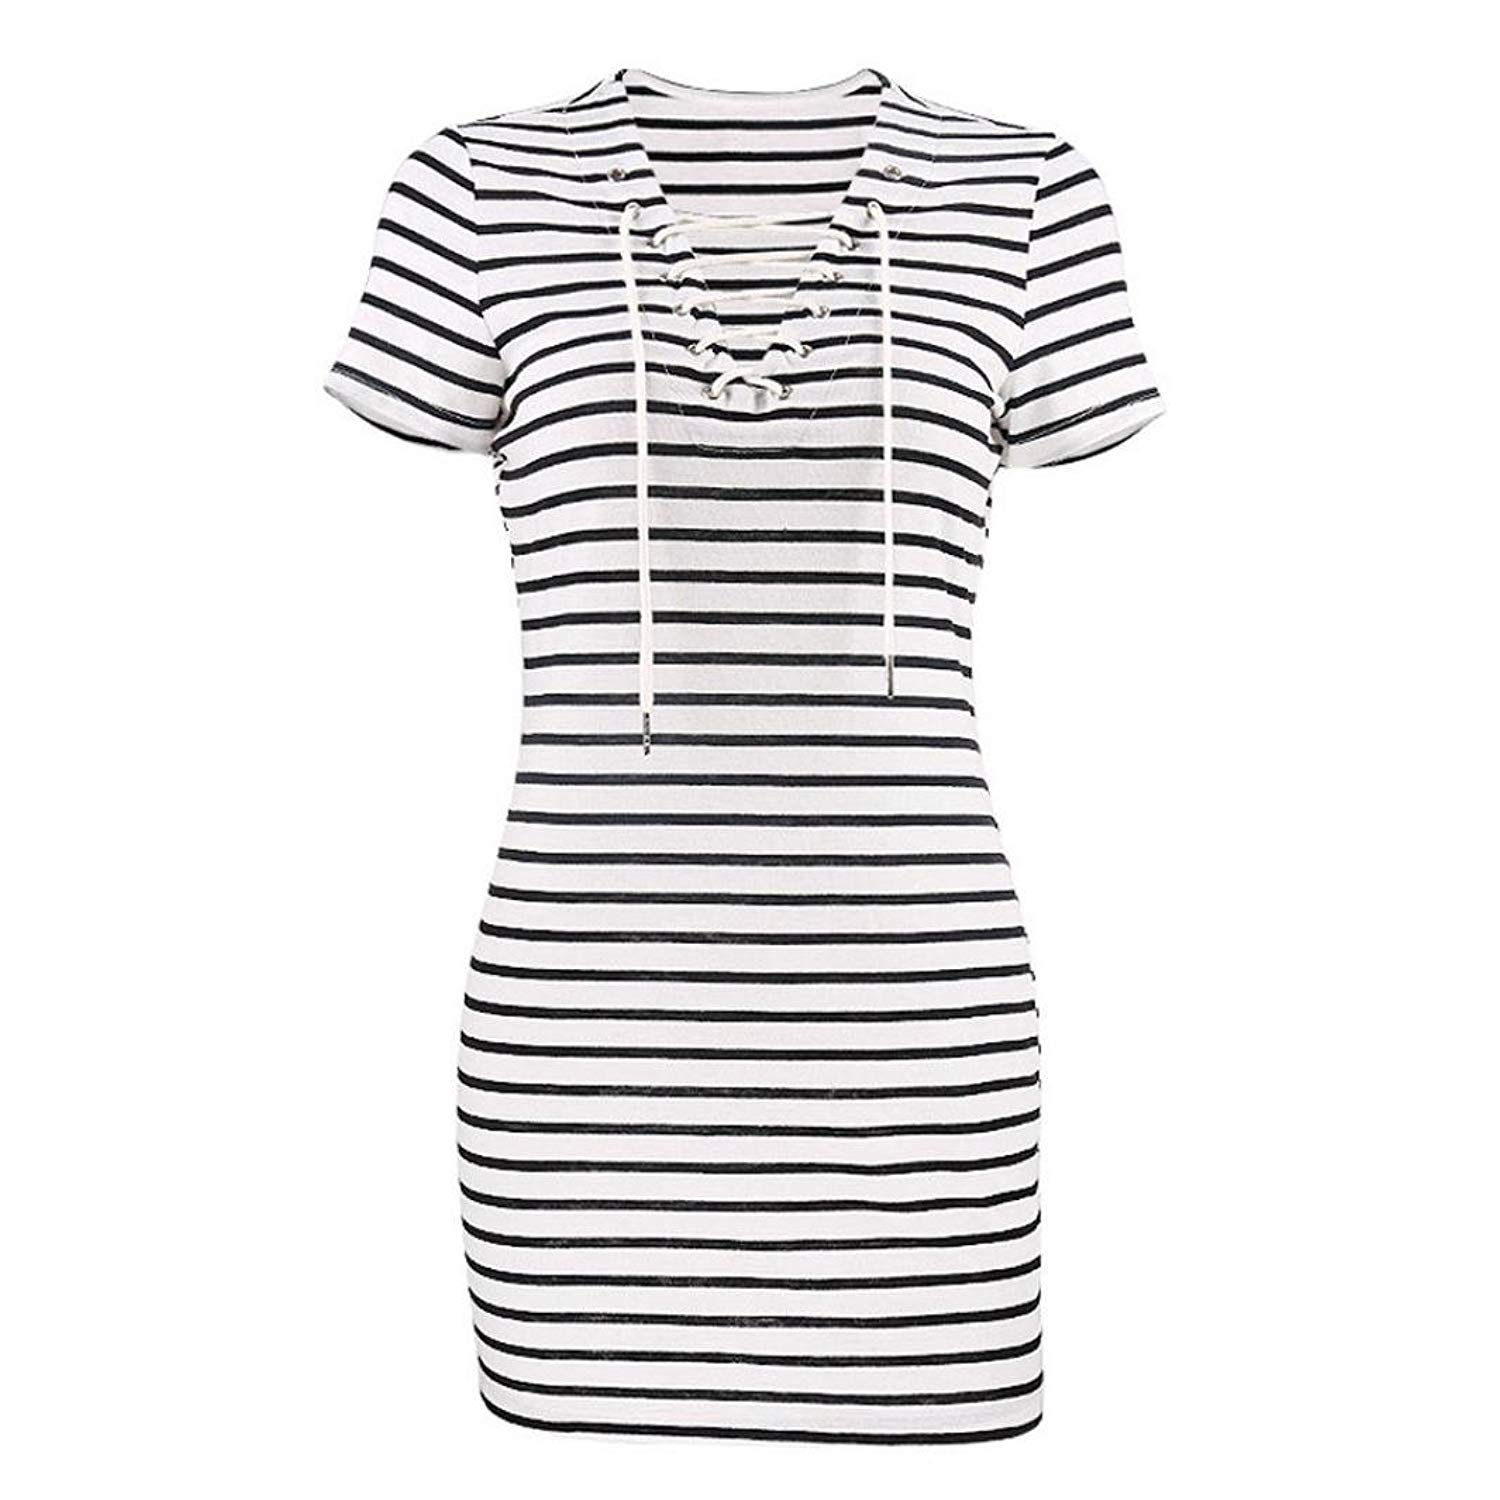 801120bbc29 Get Quotations · Yuxing Women Teen Girls Striped V Neck Lace up Short  Sleeve Casual Mini Dresses